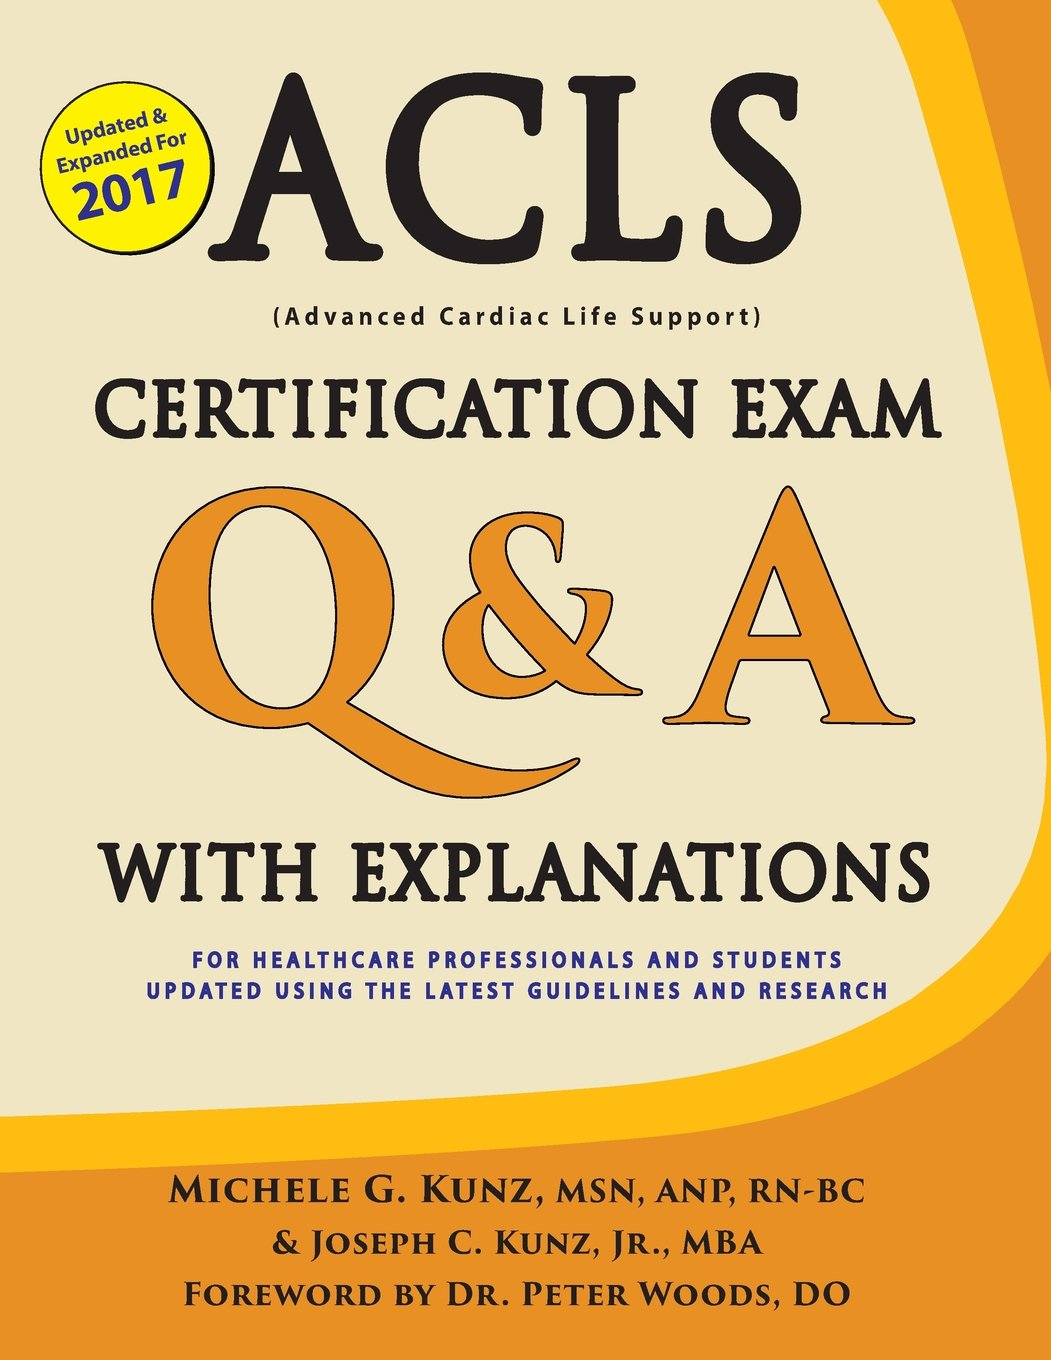 Acls Certification Exam Q A With Explanations For Healthcare